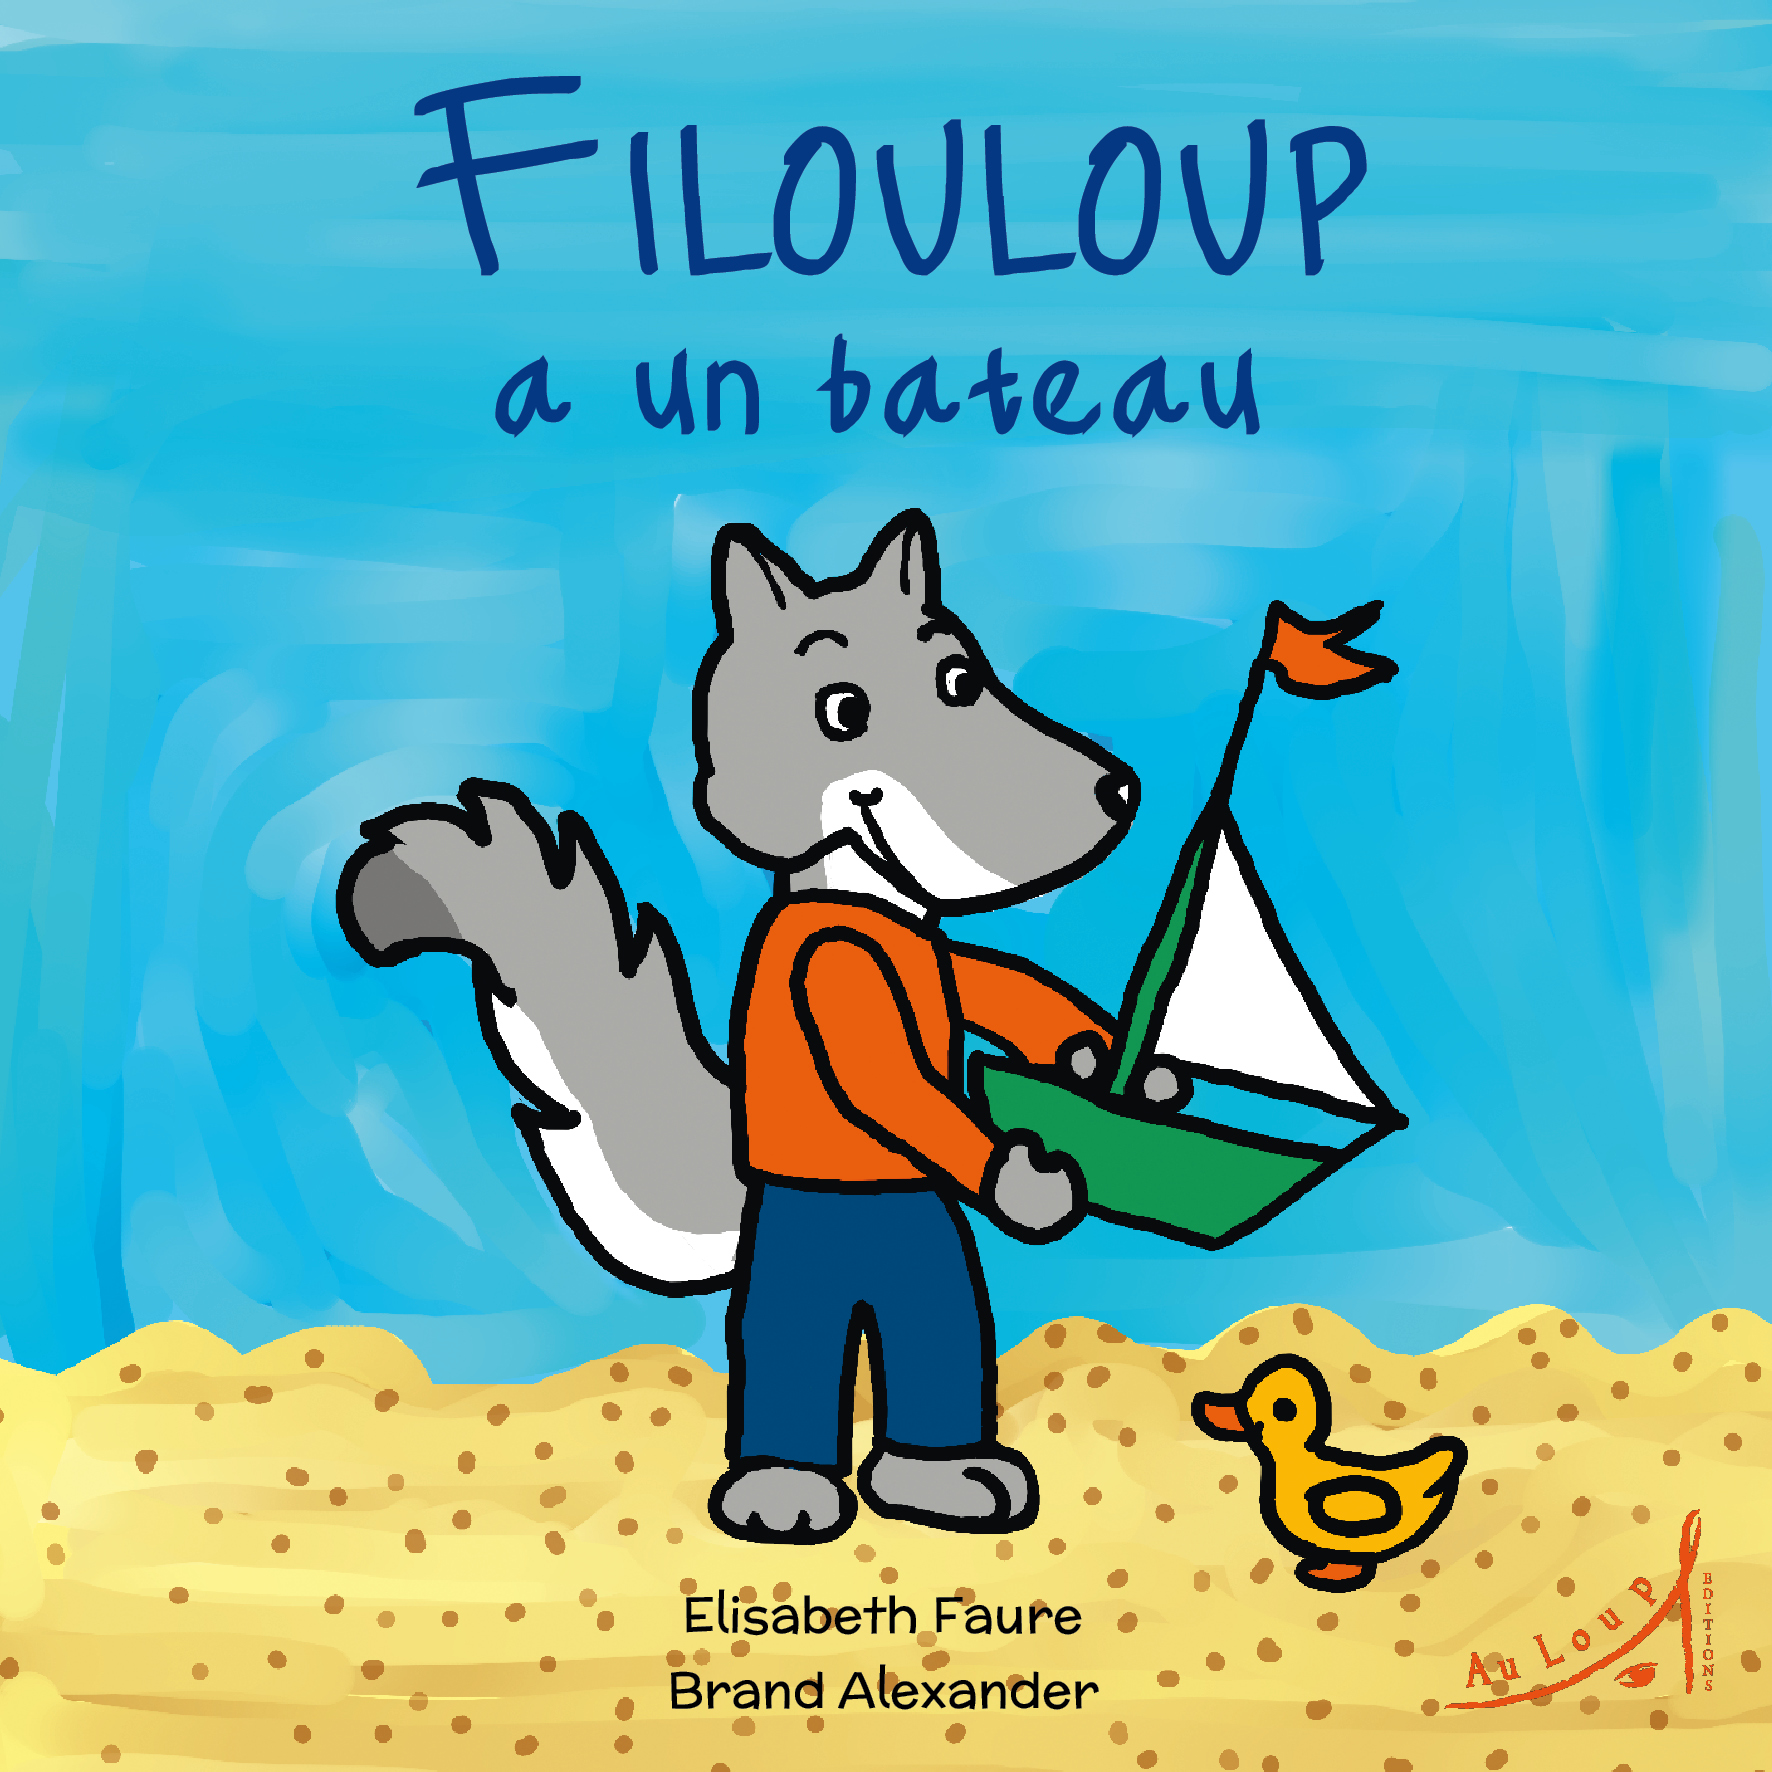 auloup_filouloup1_couv_avant_fr